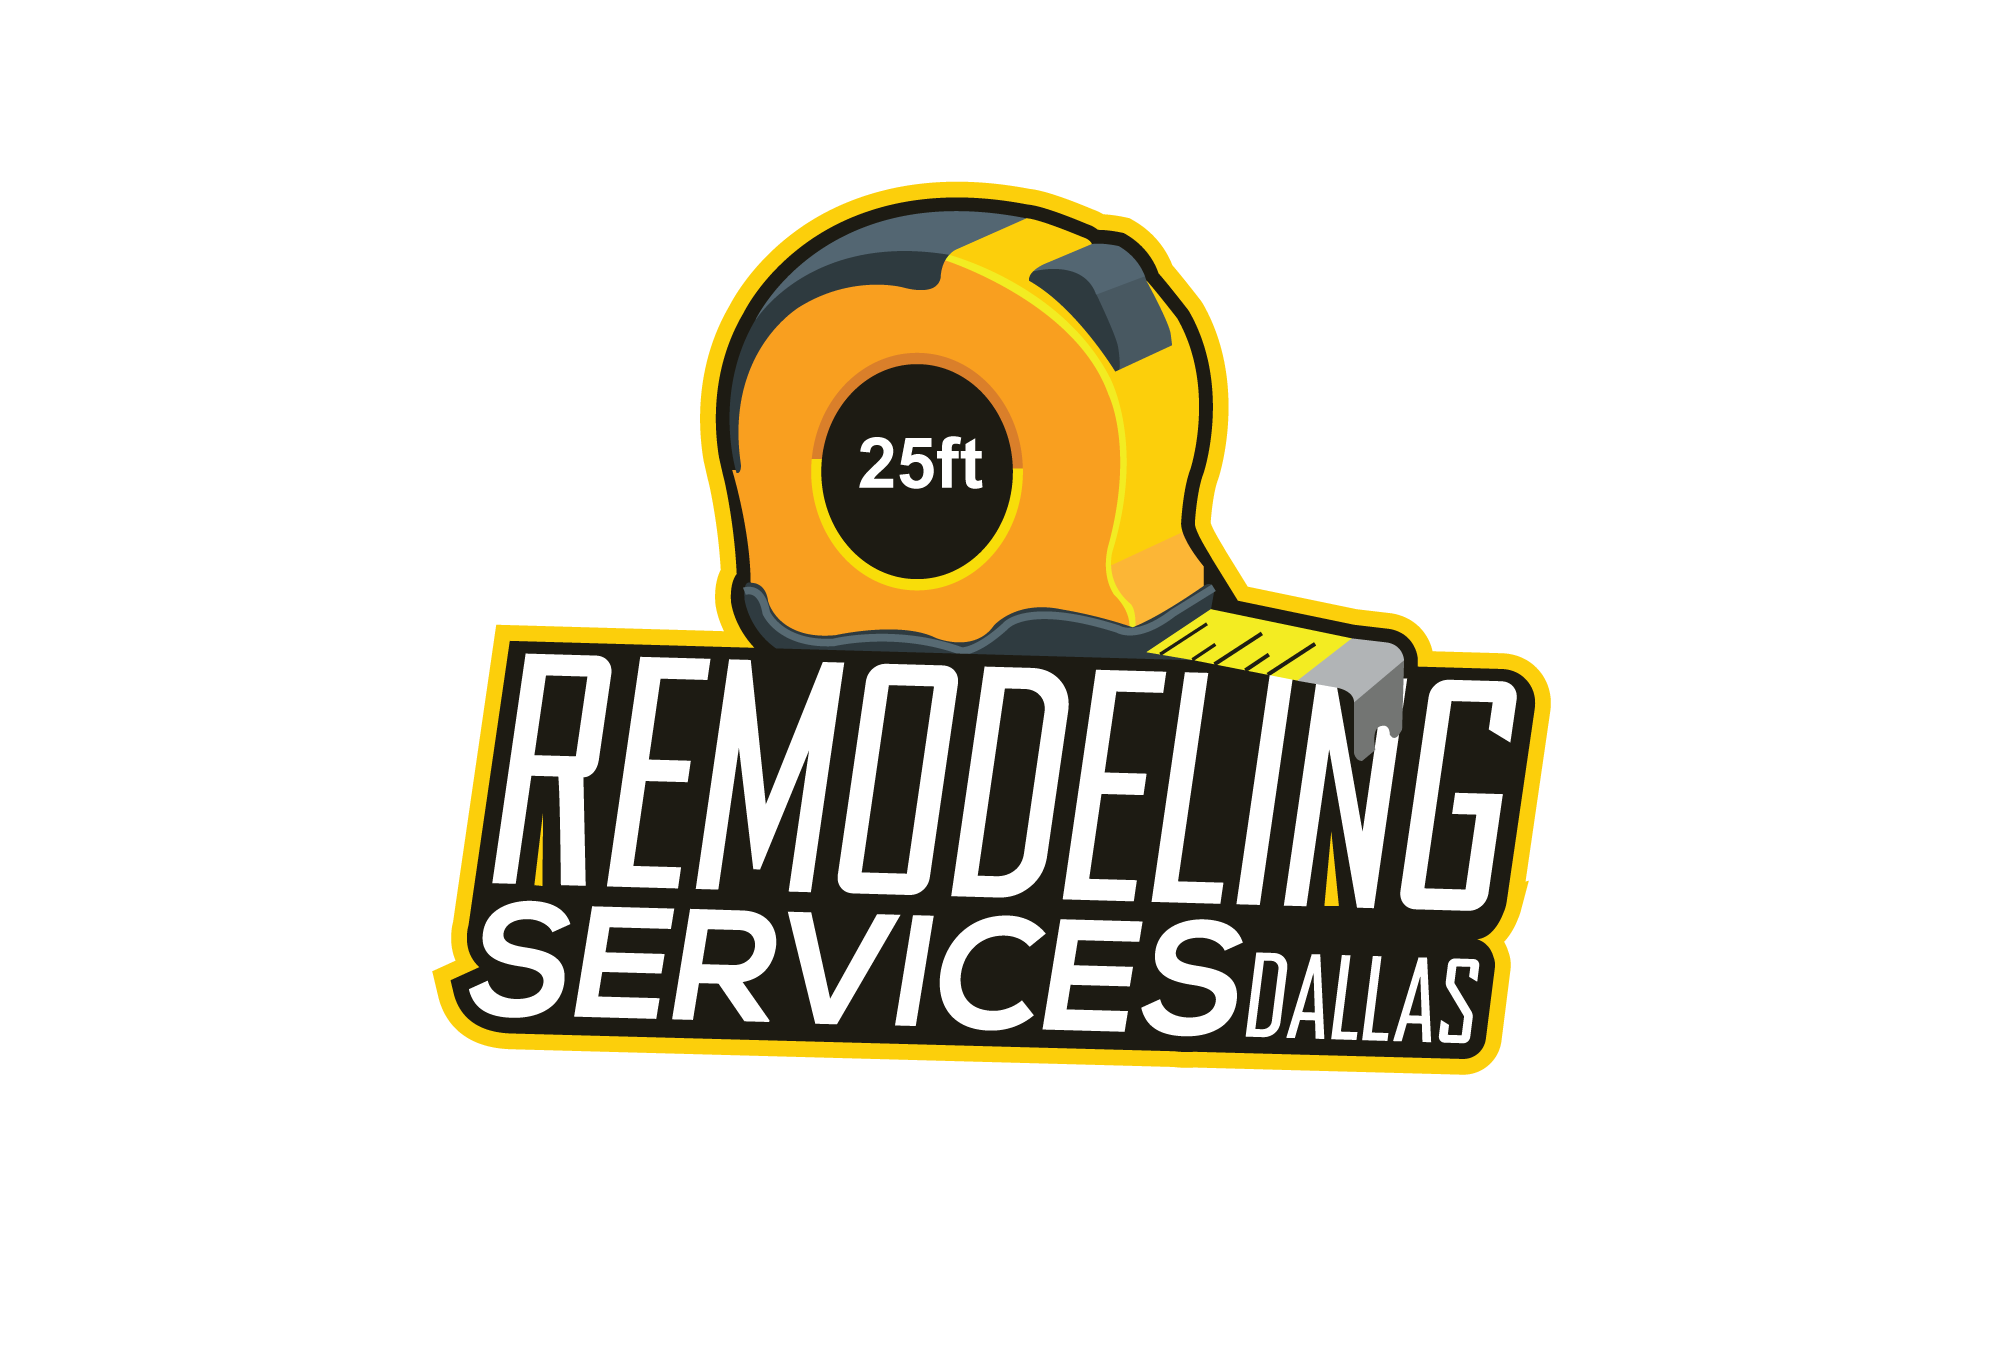 Remodeling Services of Dallas